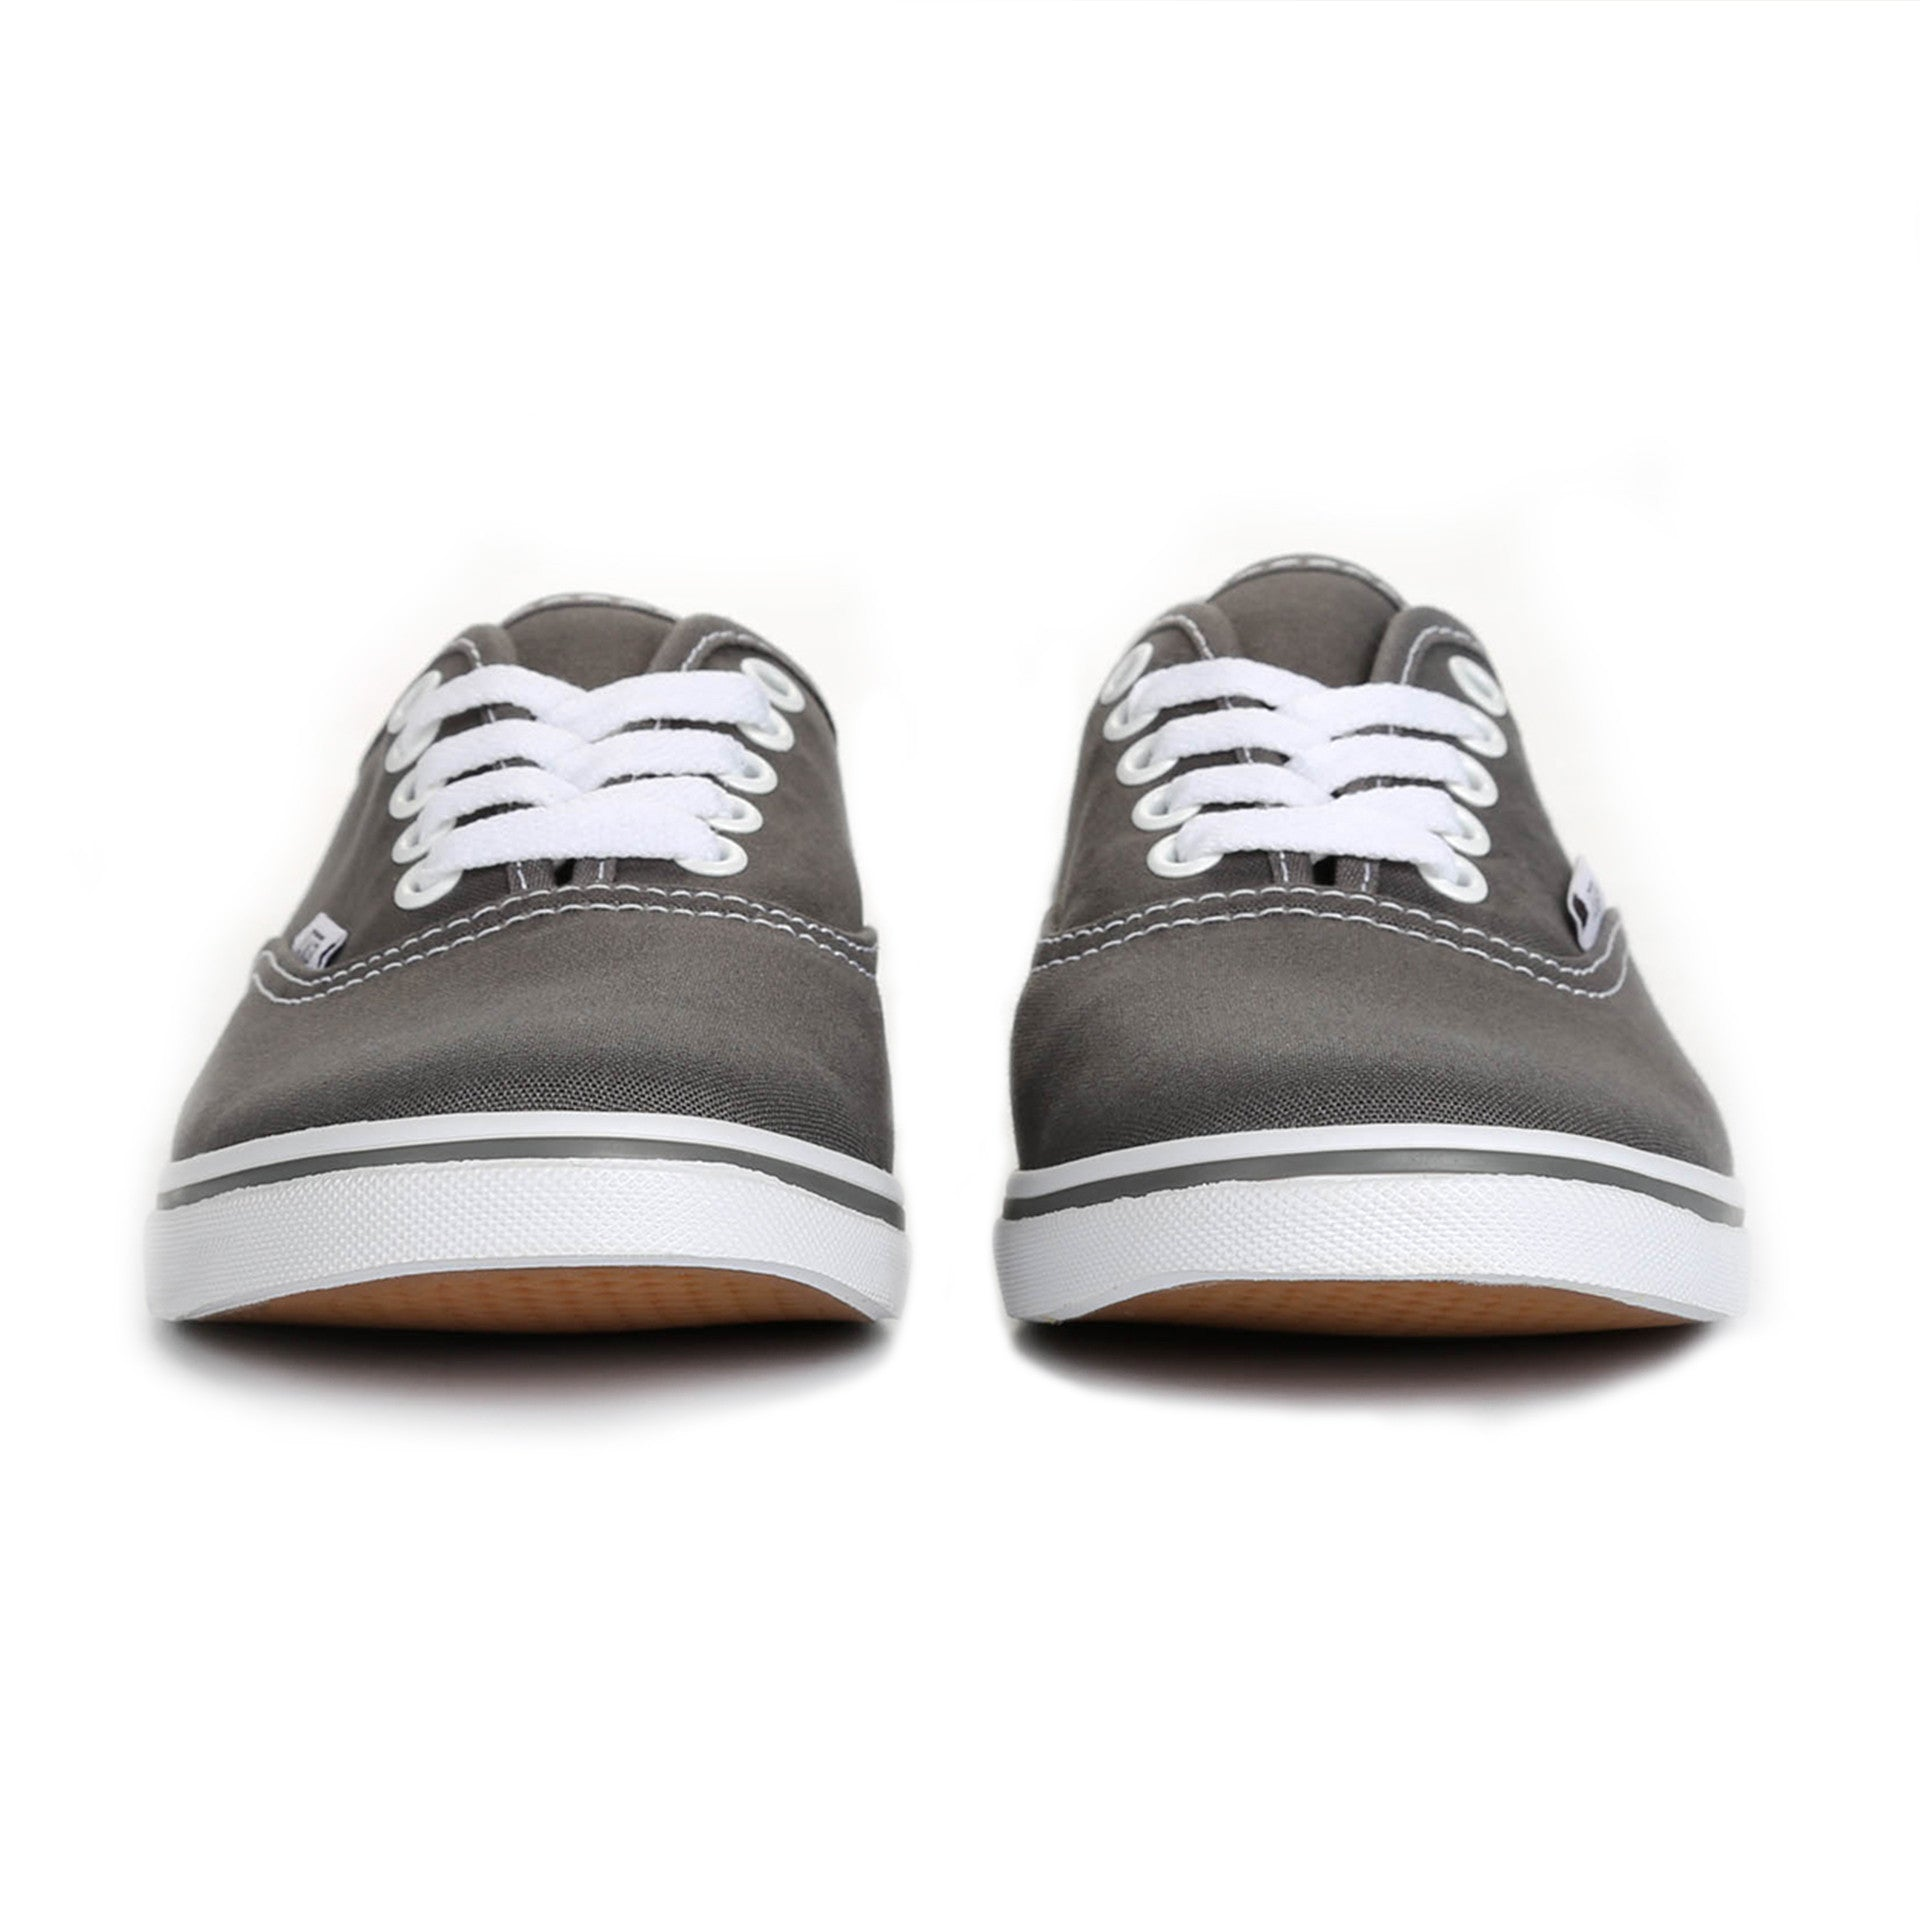 f4db5067dc Vans Authentic Lo Pro - Pewter White - New Star